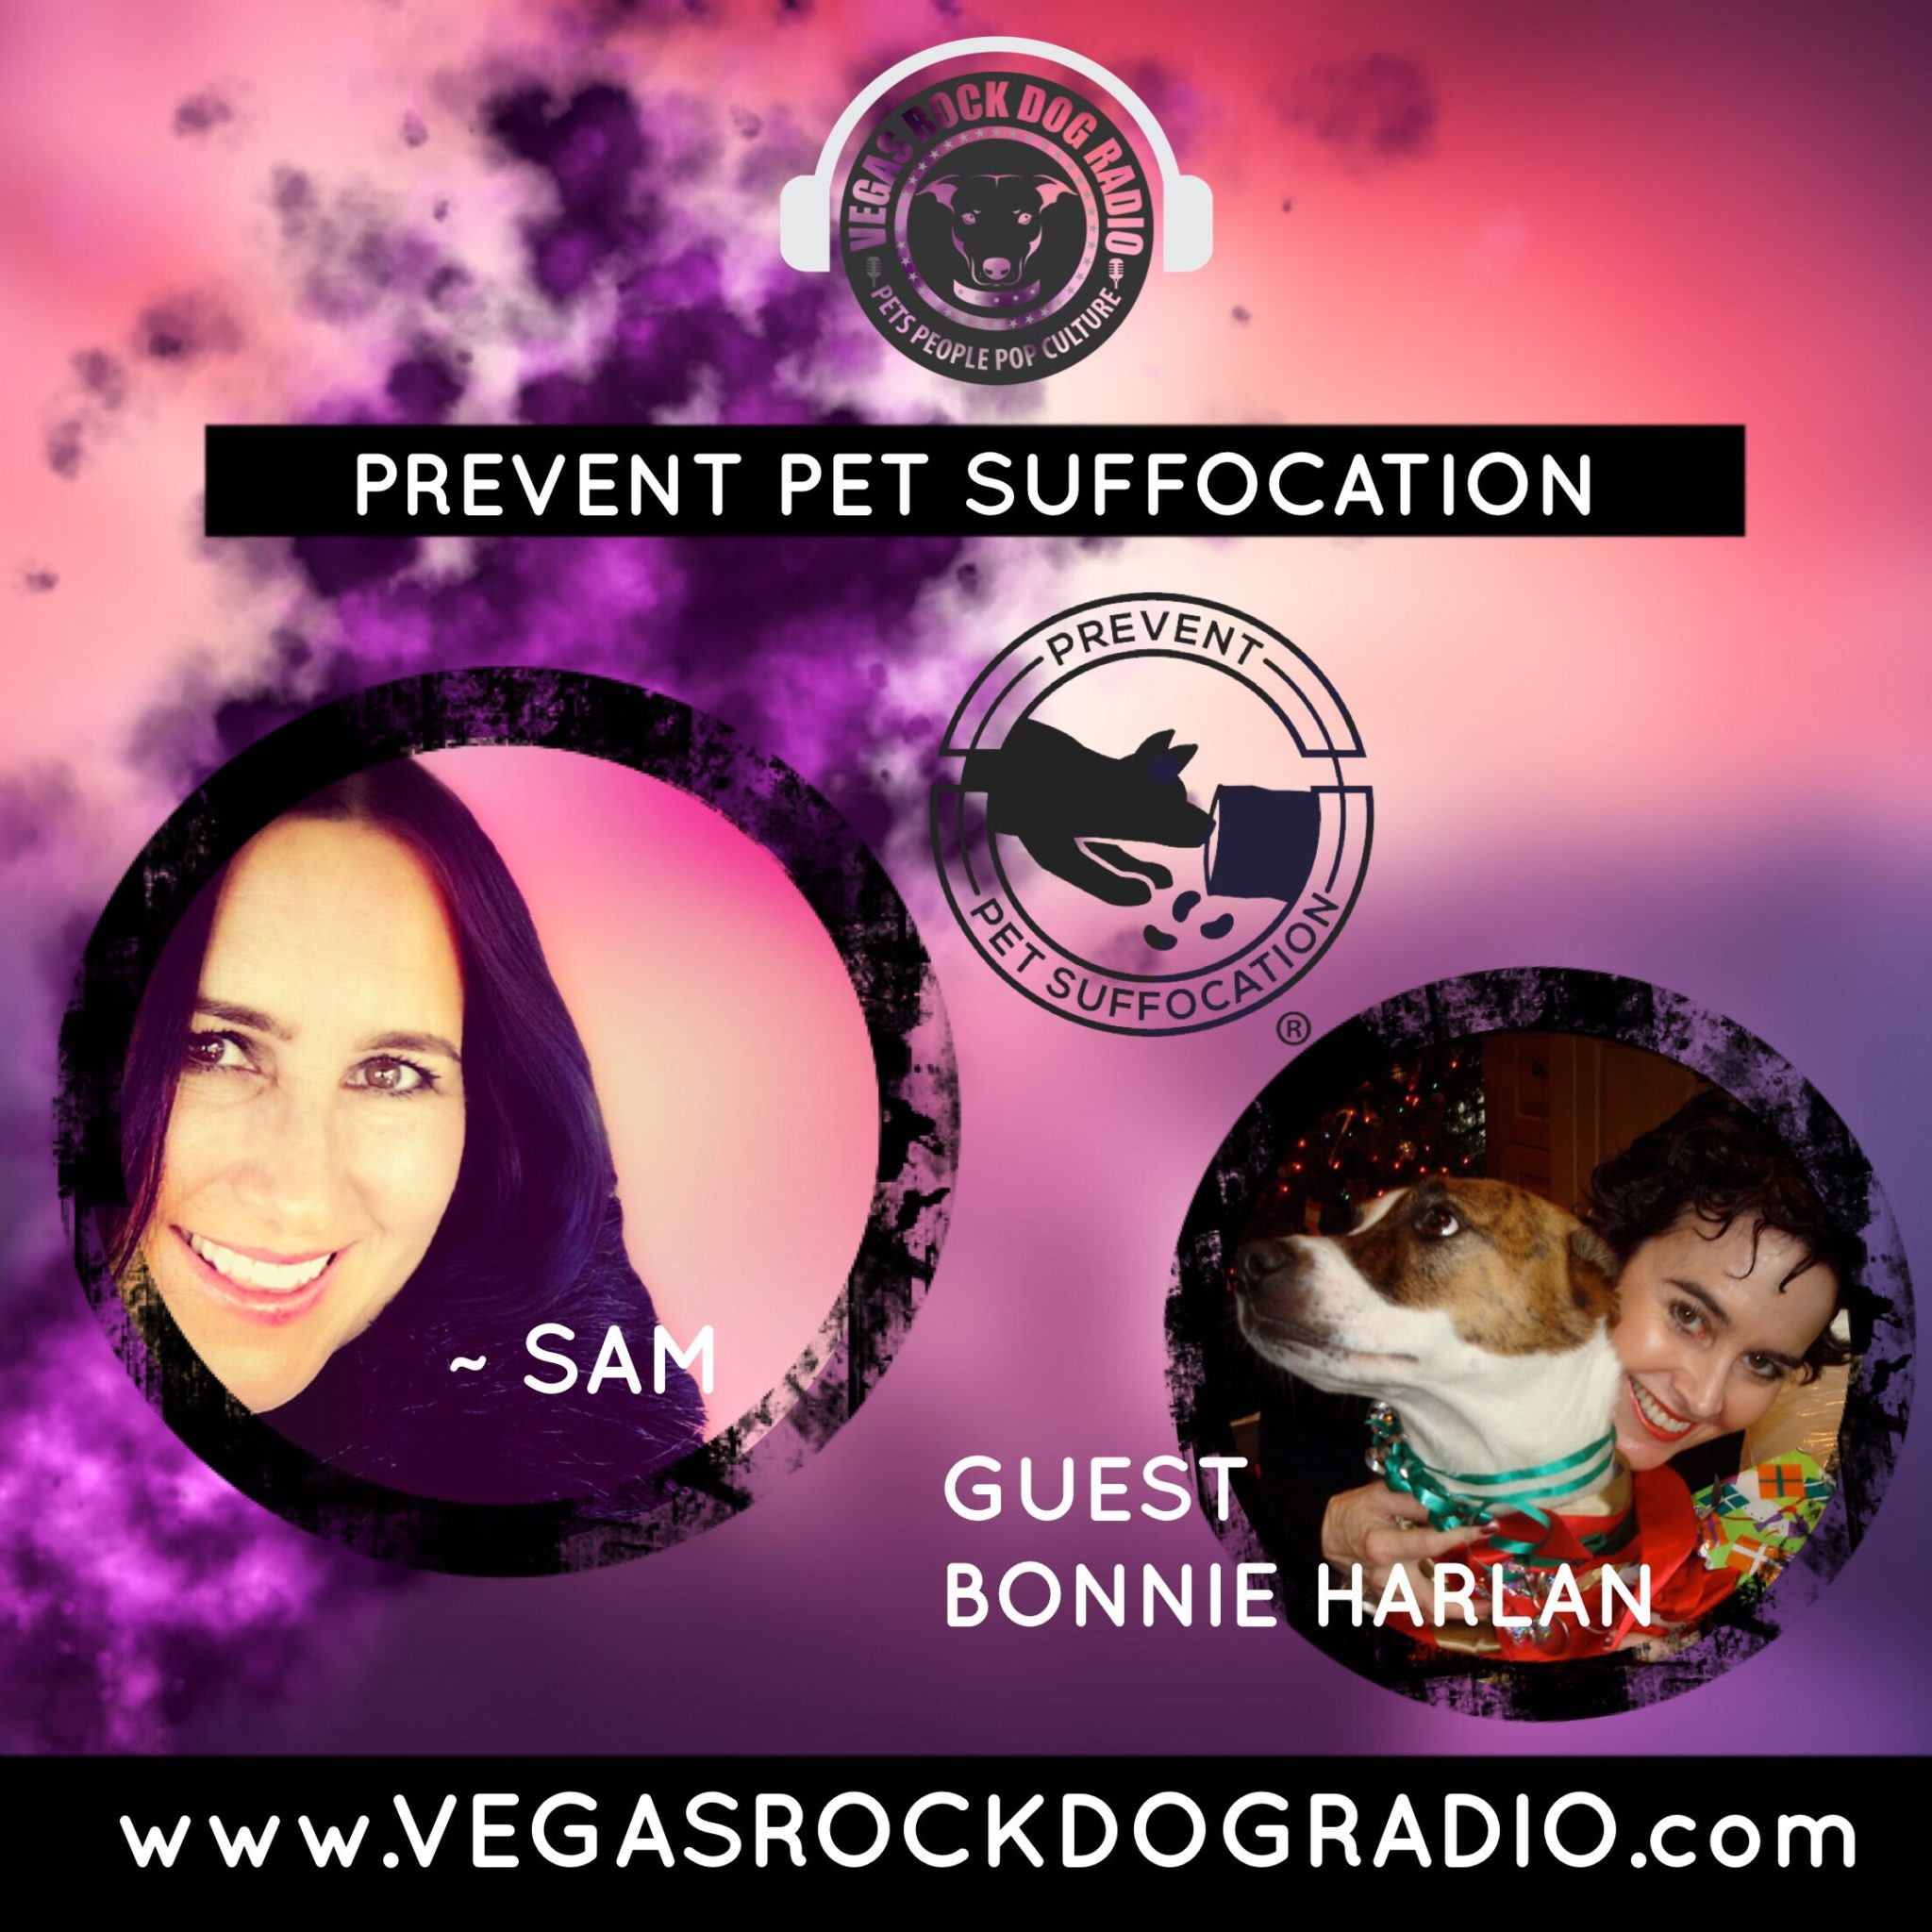 How to prevent pet suffocation Vegas rock dog radio